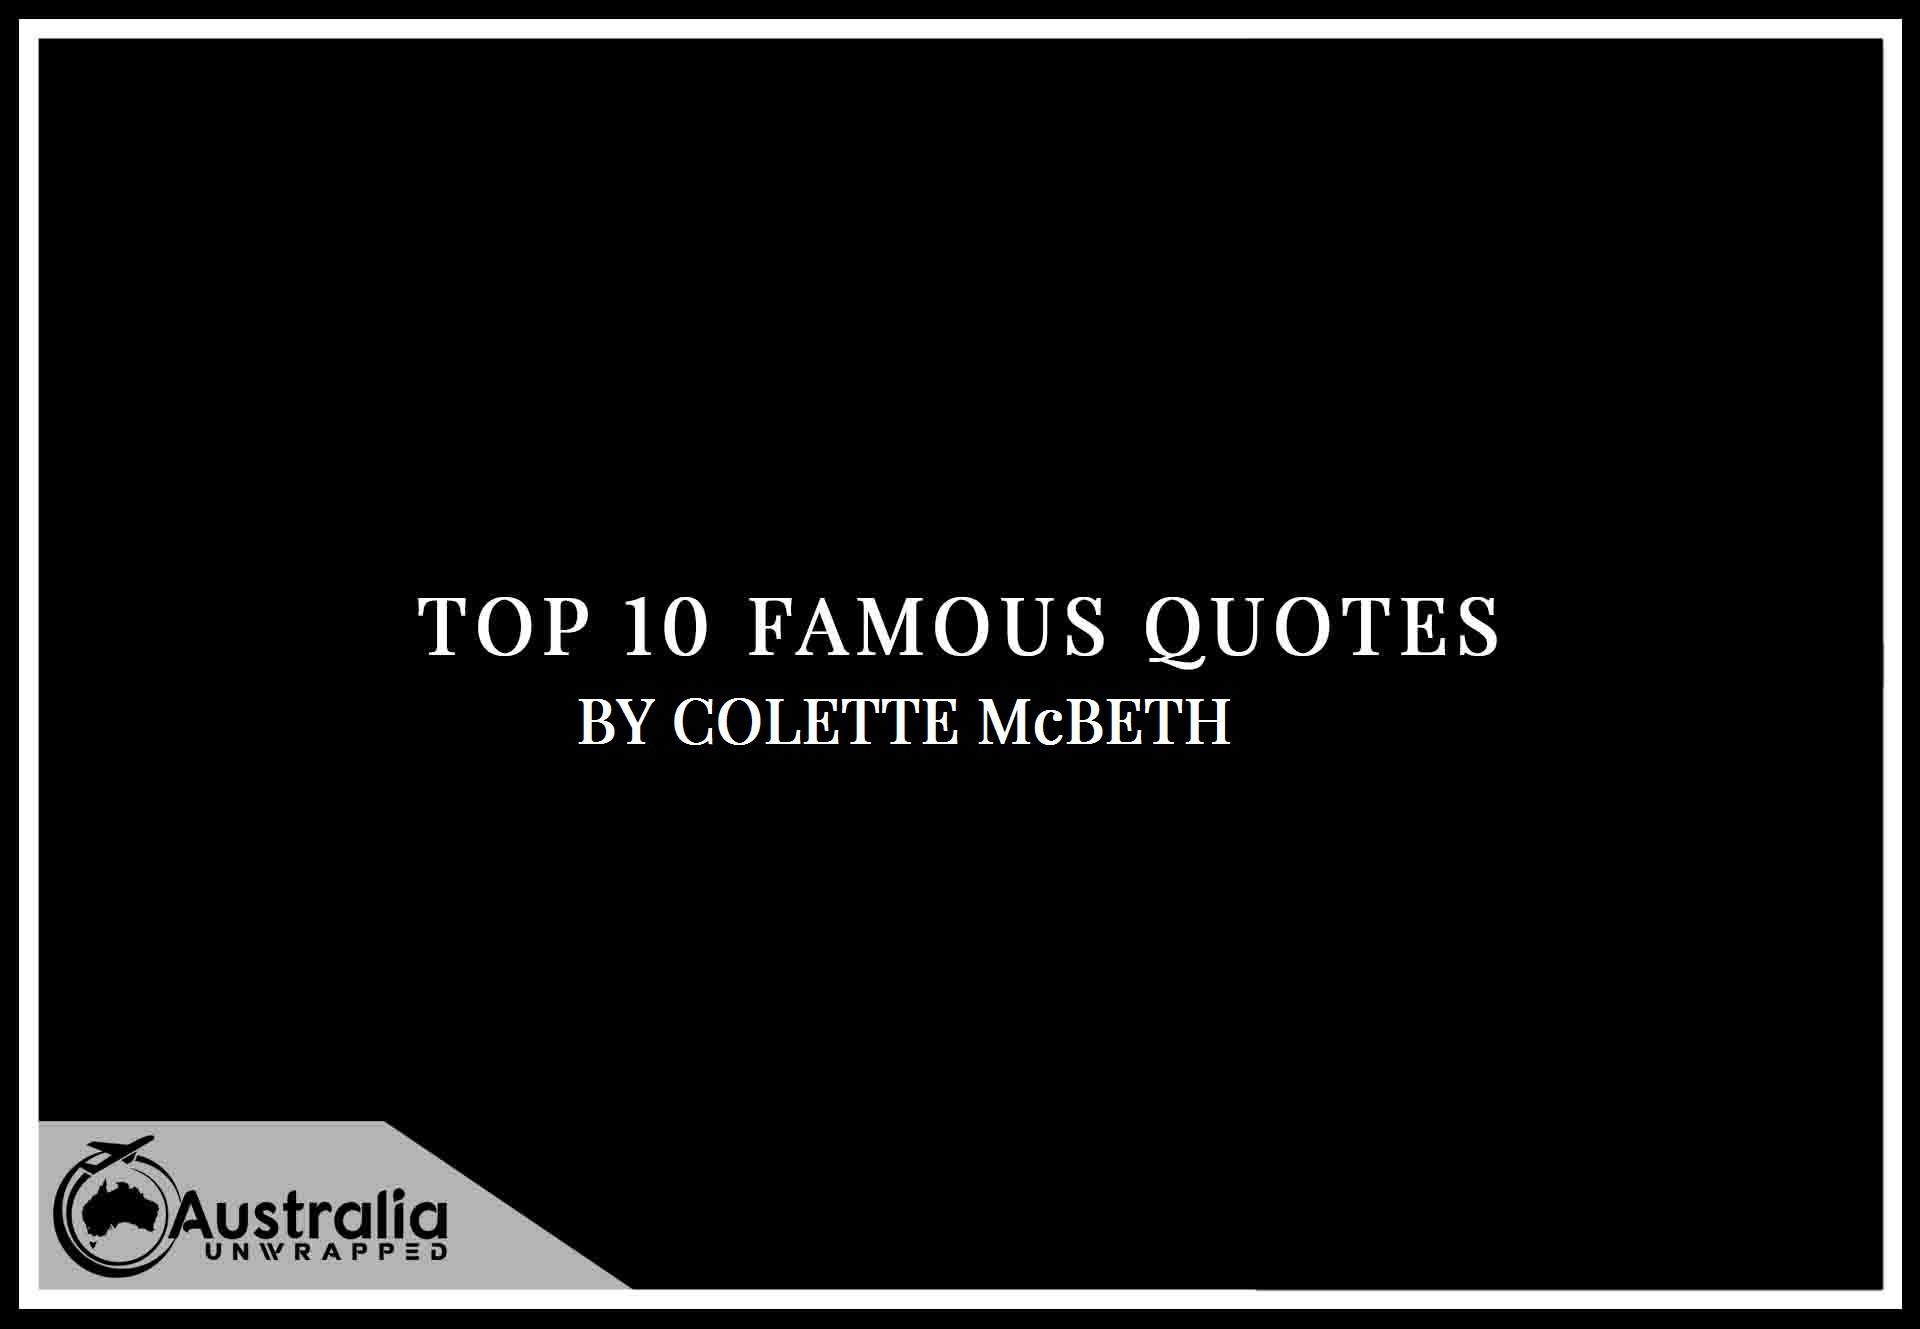 Colette McBeth's Top 10 Popular and Famous Quotes